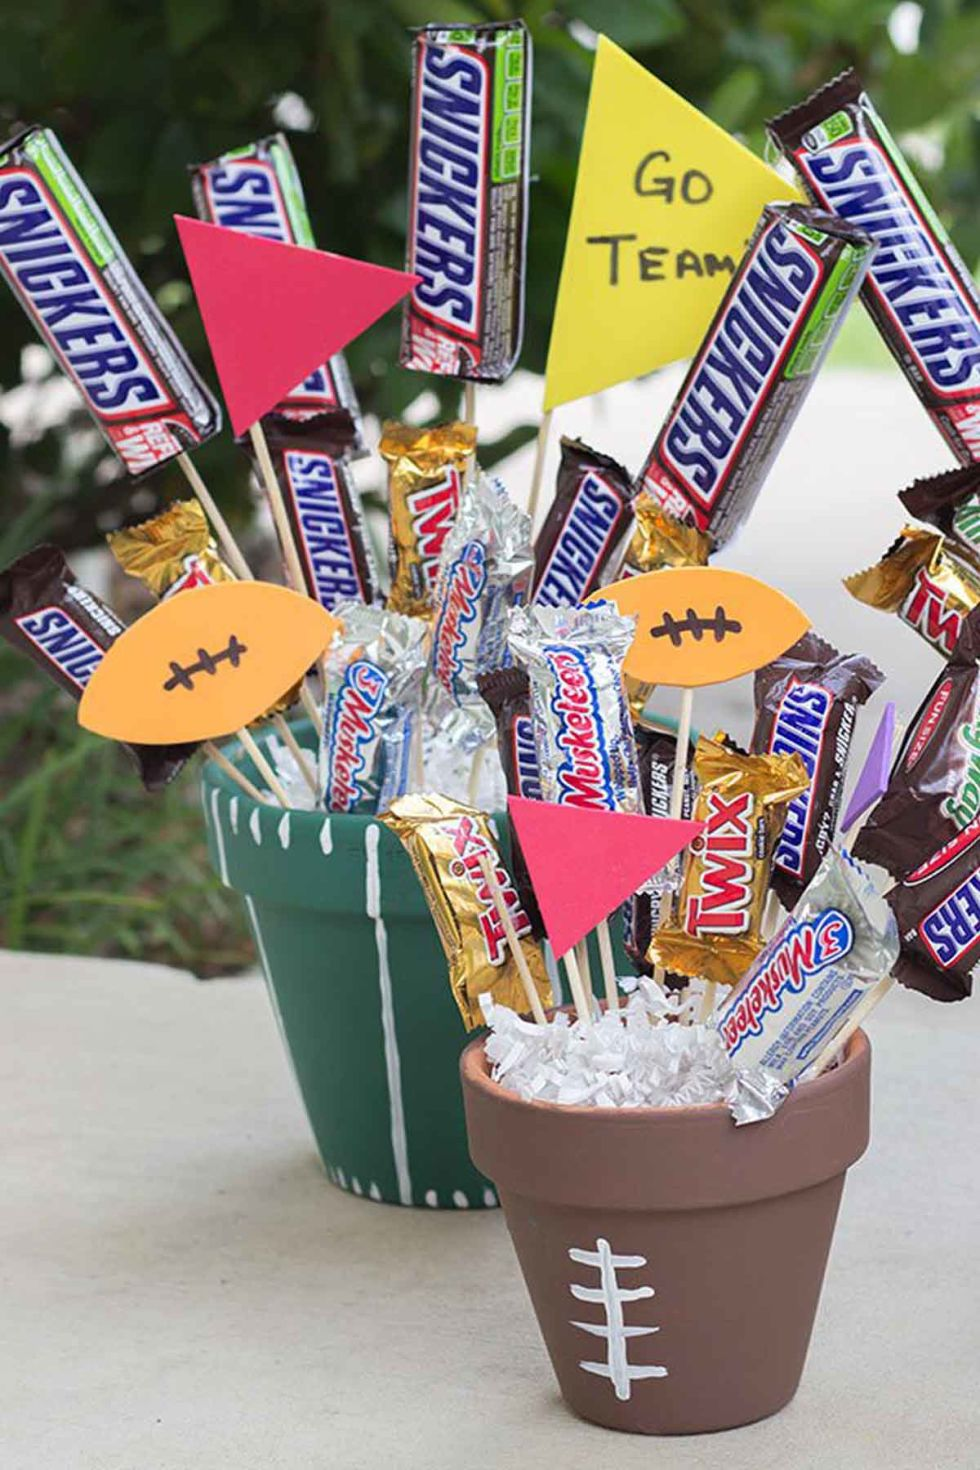 10 DIY Football Decorations for a Super Bowl Party - Decorating ...